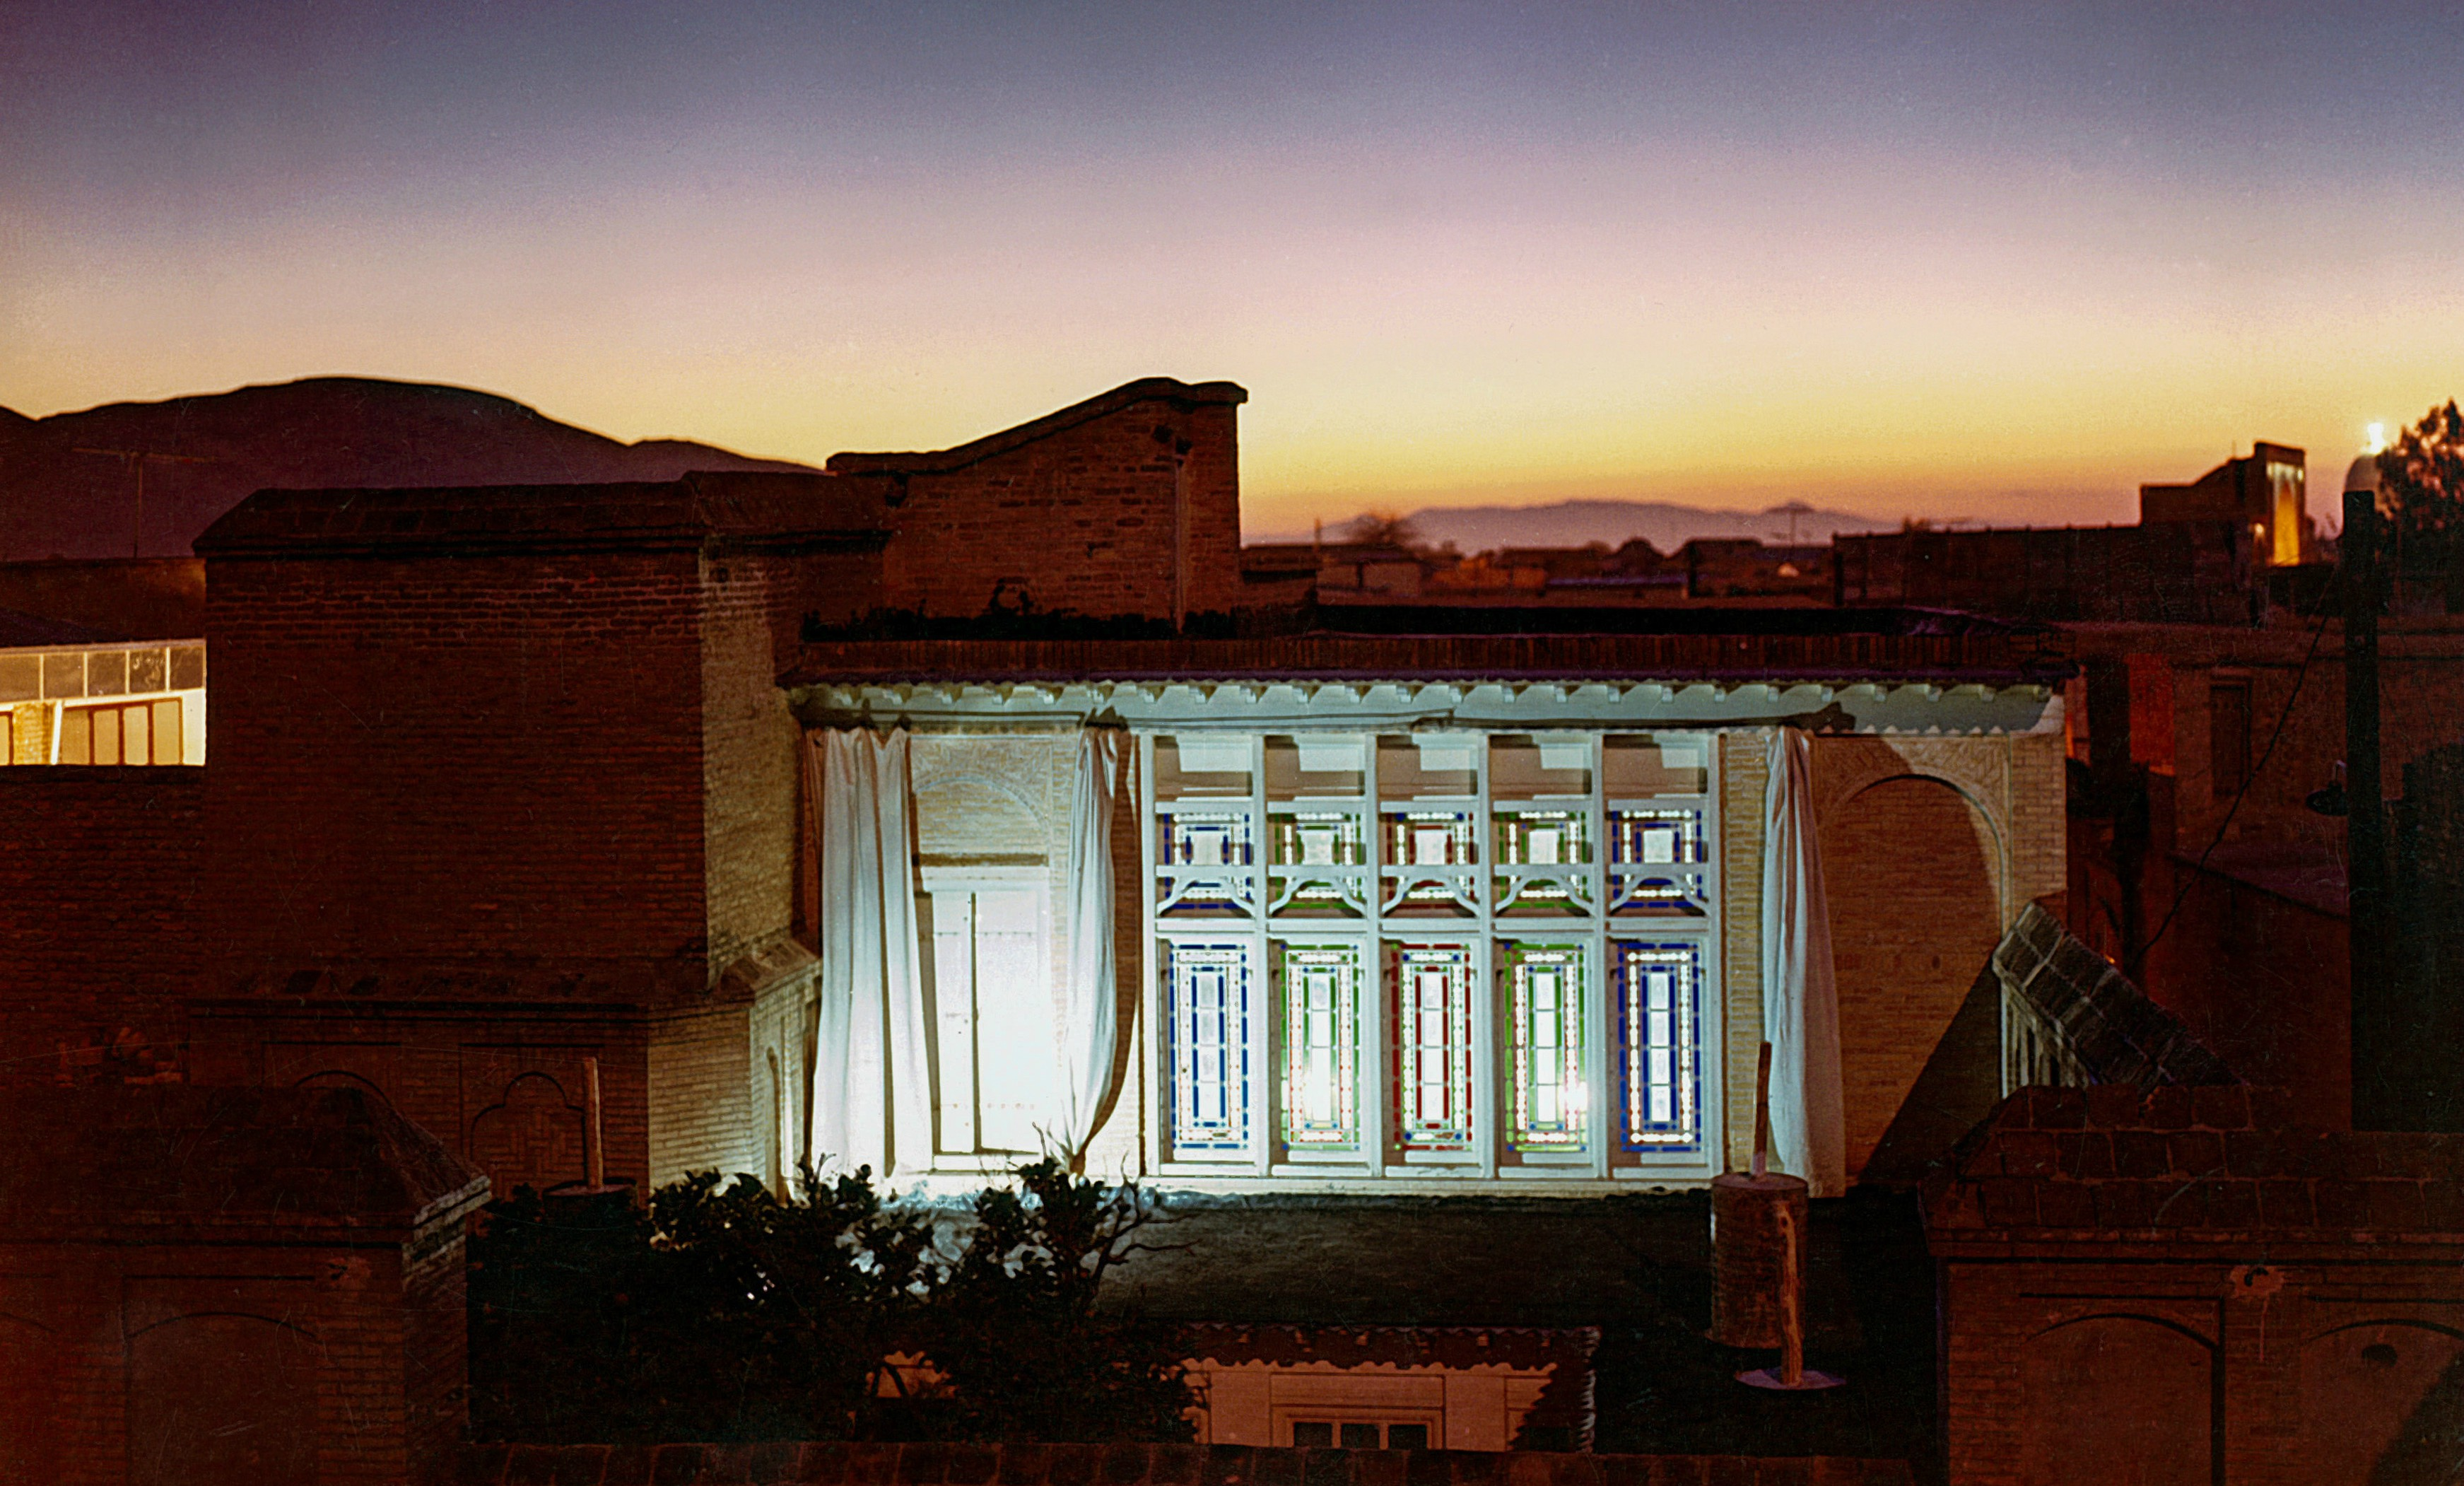 The House of the Bab in Shiraz, Iran